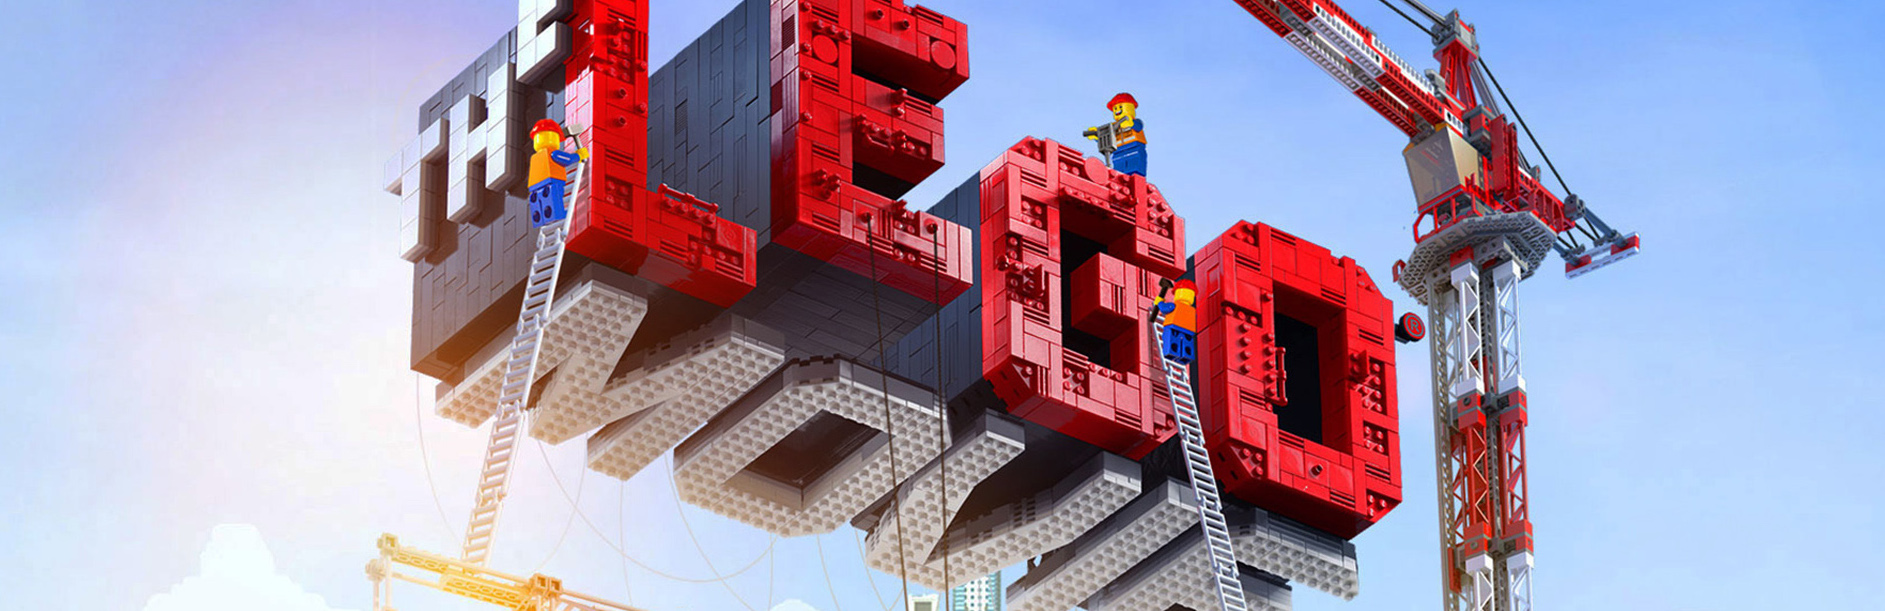 Recension Lego the Movie GGGG+ (inkl video)